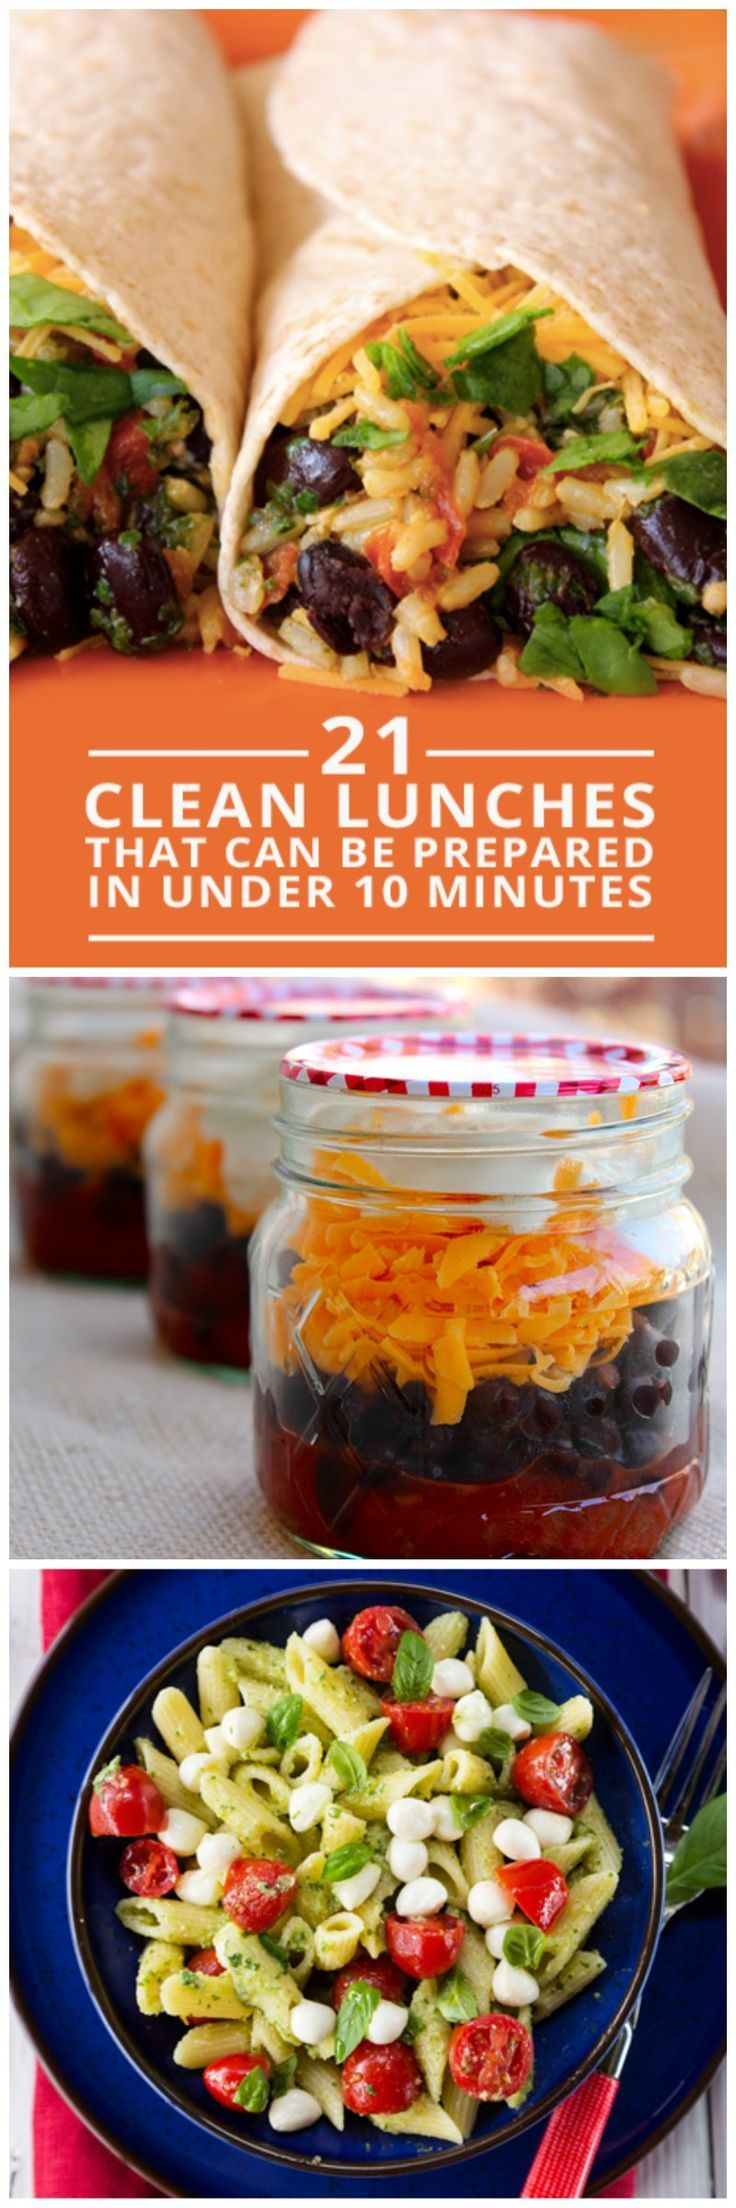 21 Clean Lunches Prepared in Under 10 Minutes